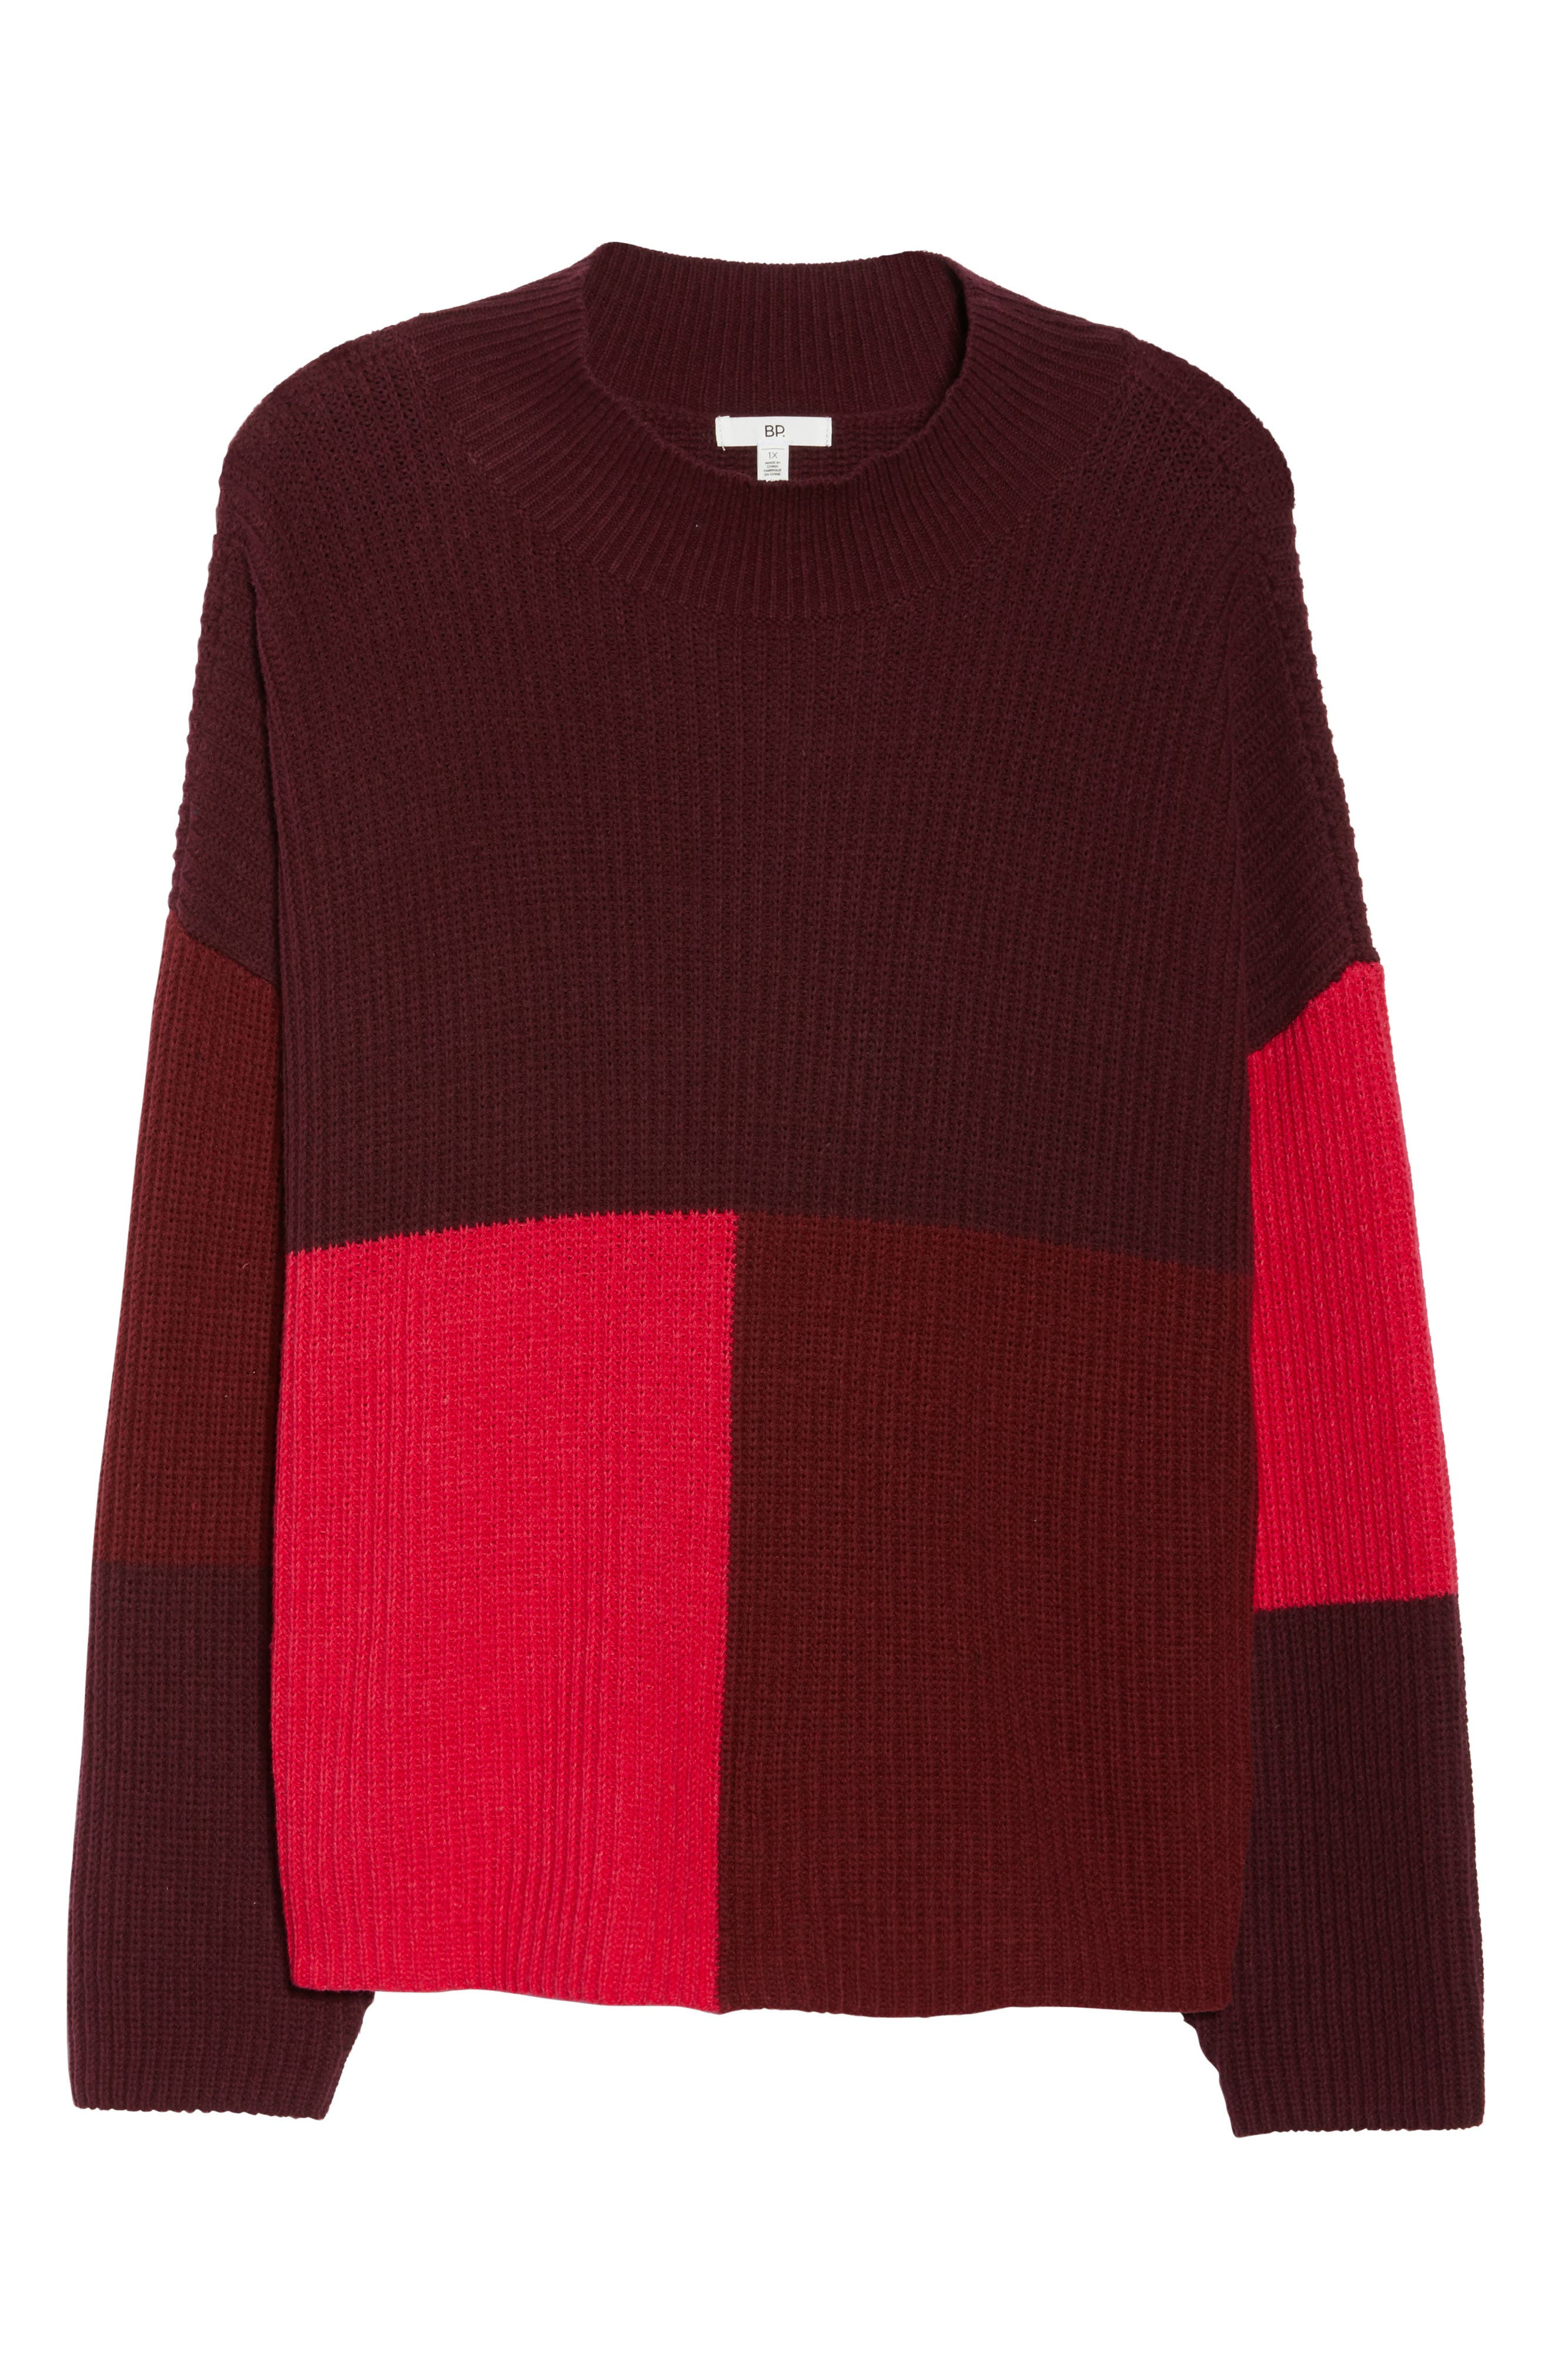 Mock Neck Colorblock Sweater,                             Alternate thumbnail 11, color,                             RED RUMBA COLORBLOCK